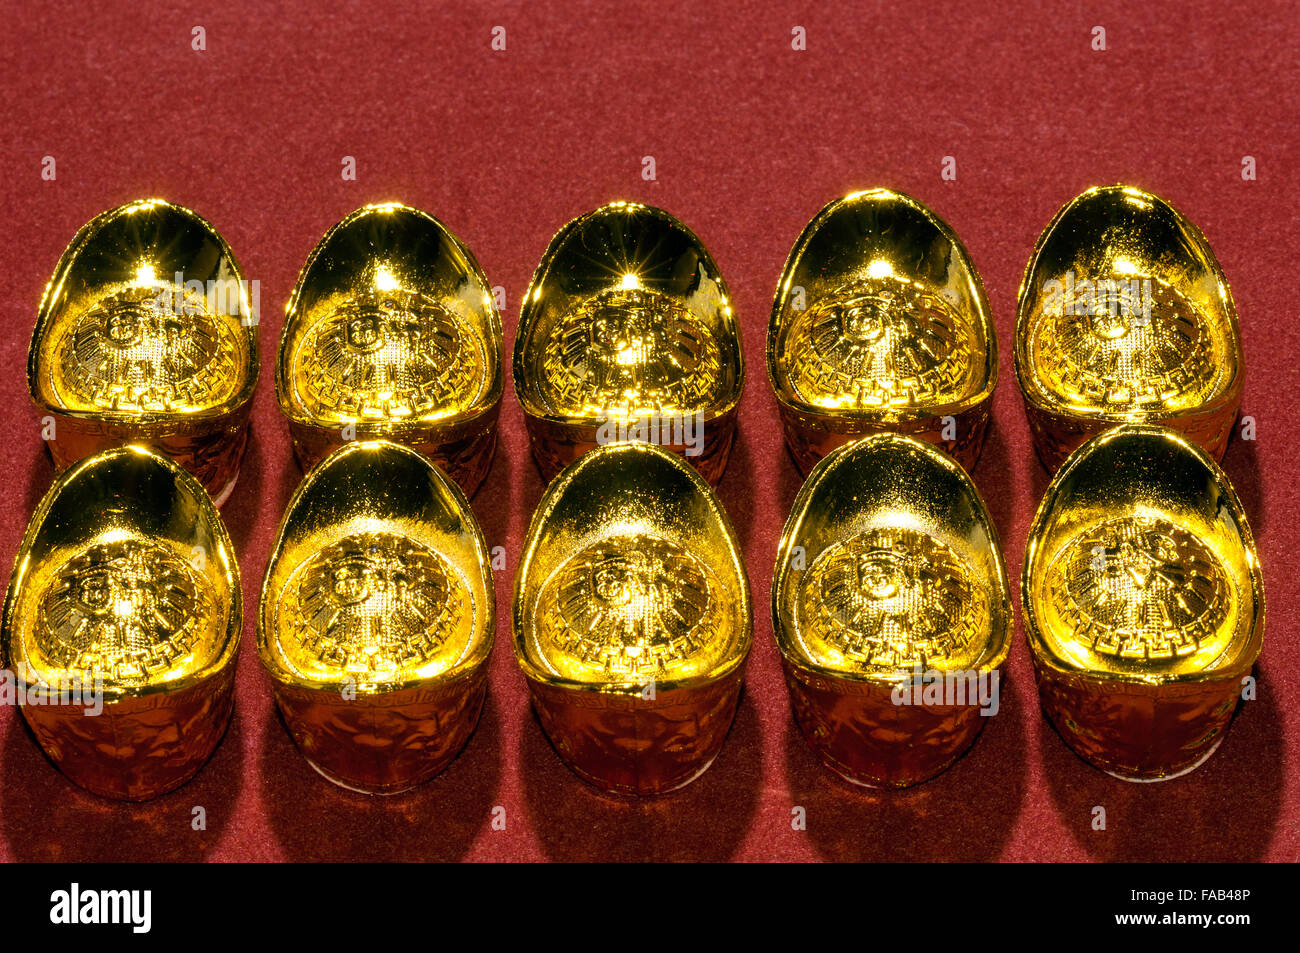 Small artificial Chinese auspicious gold ingots in studio setting - Stock Image